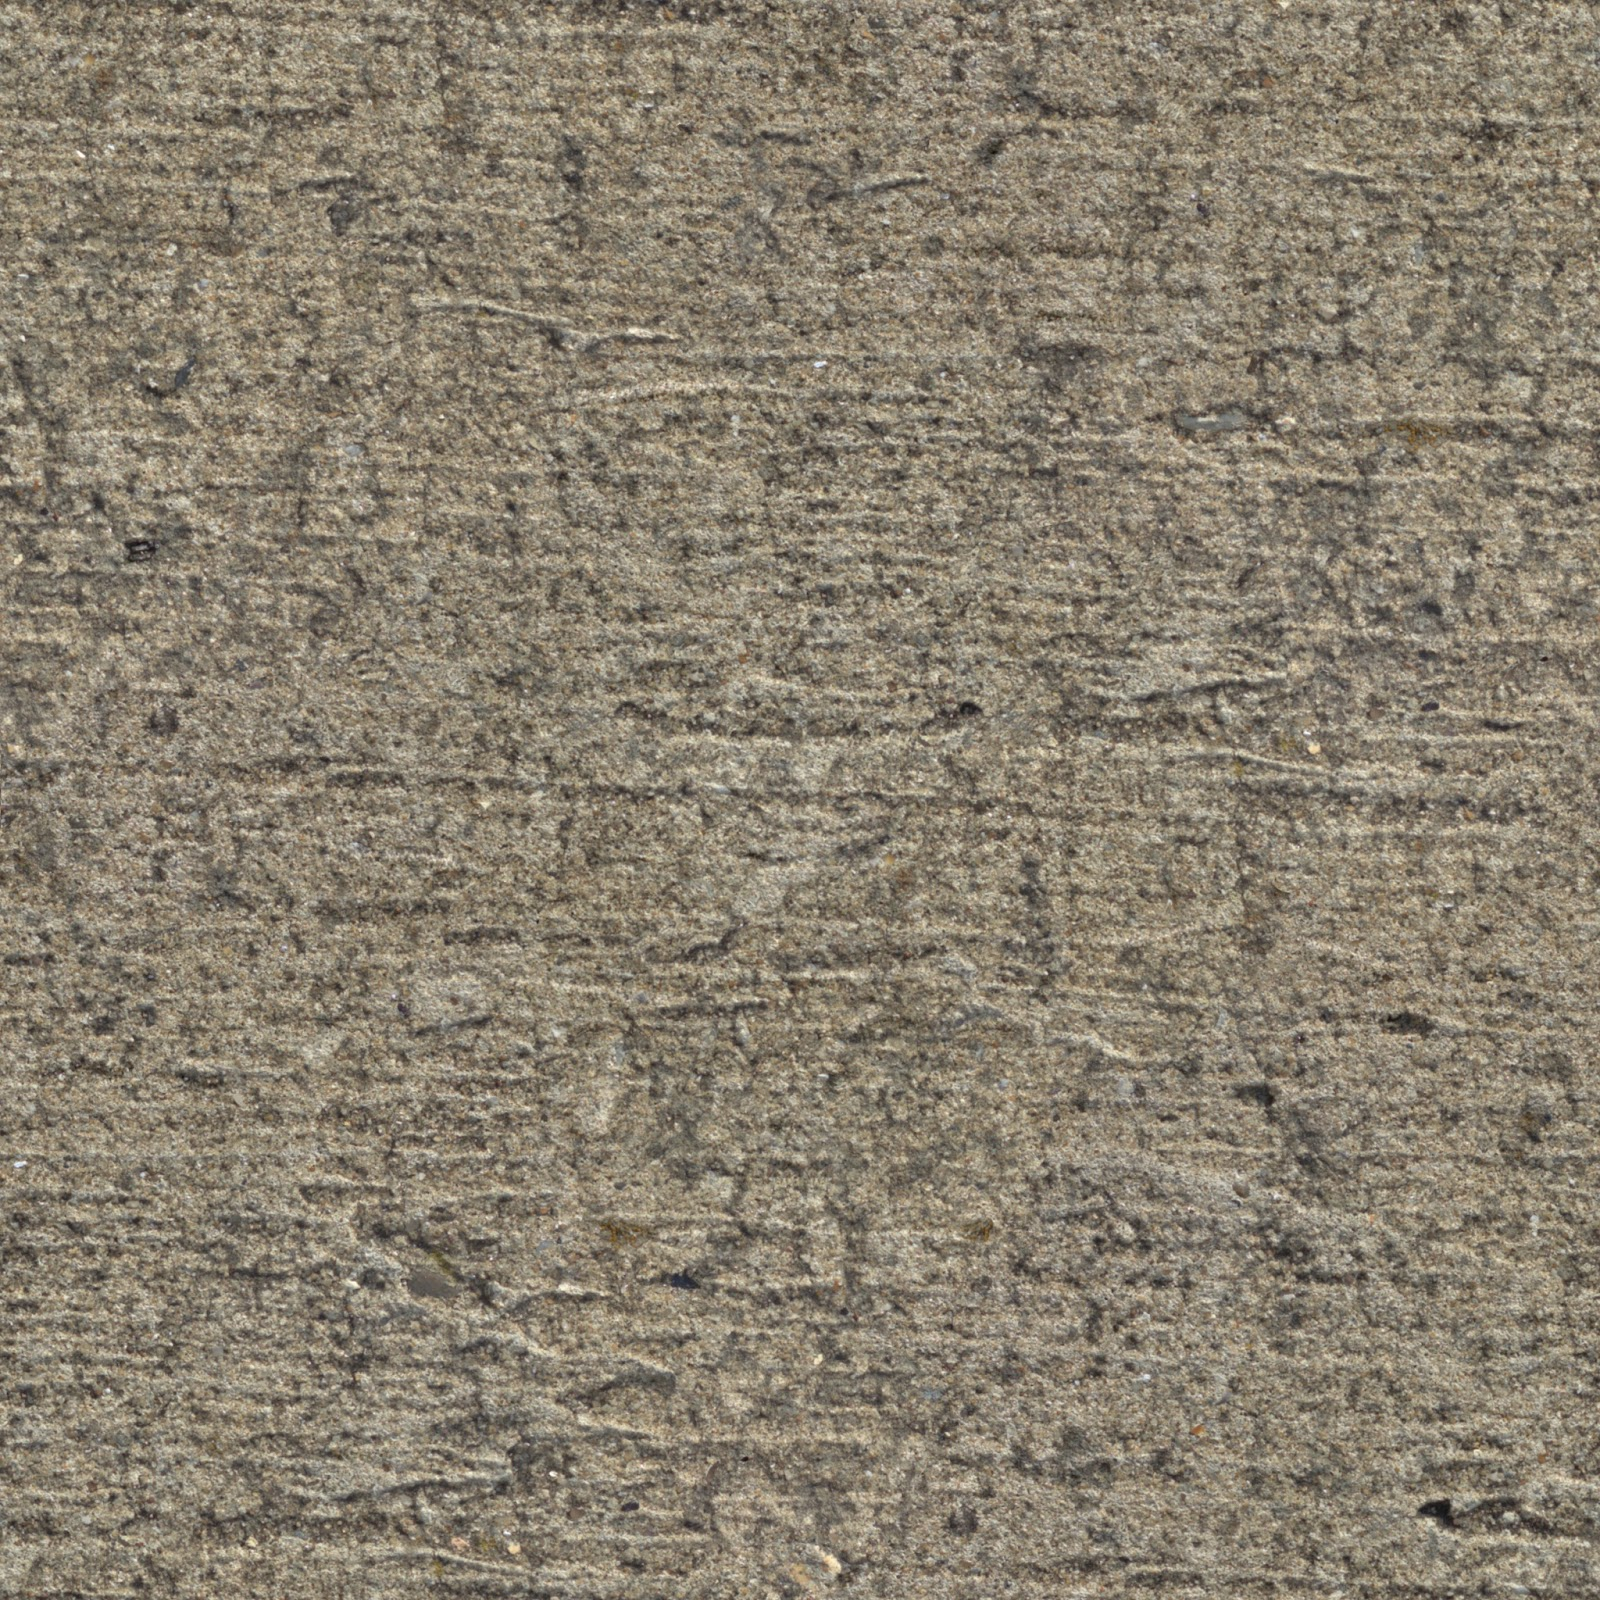 Concrete rough brown seamless texture 2048x2048